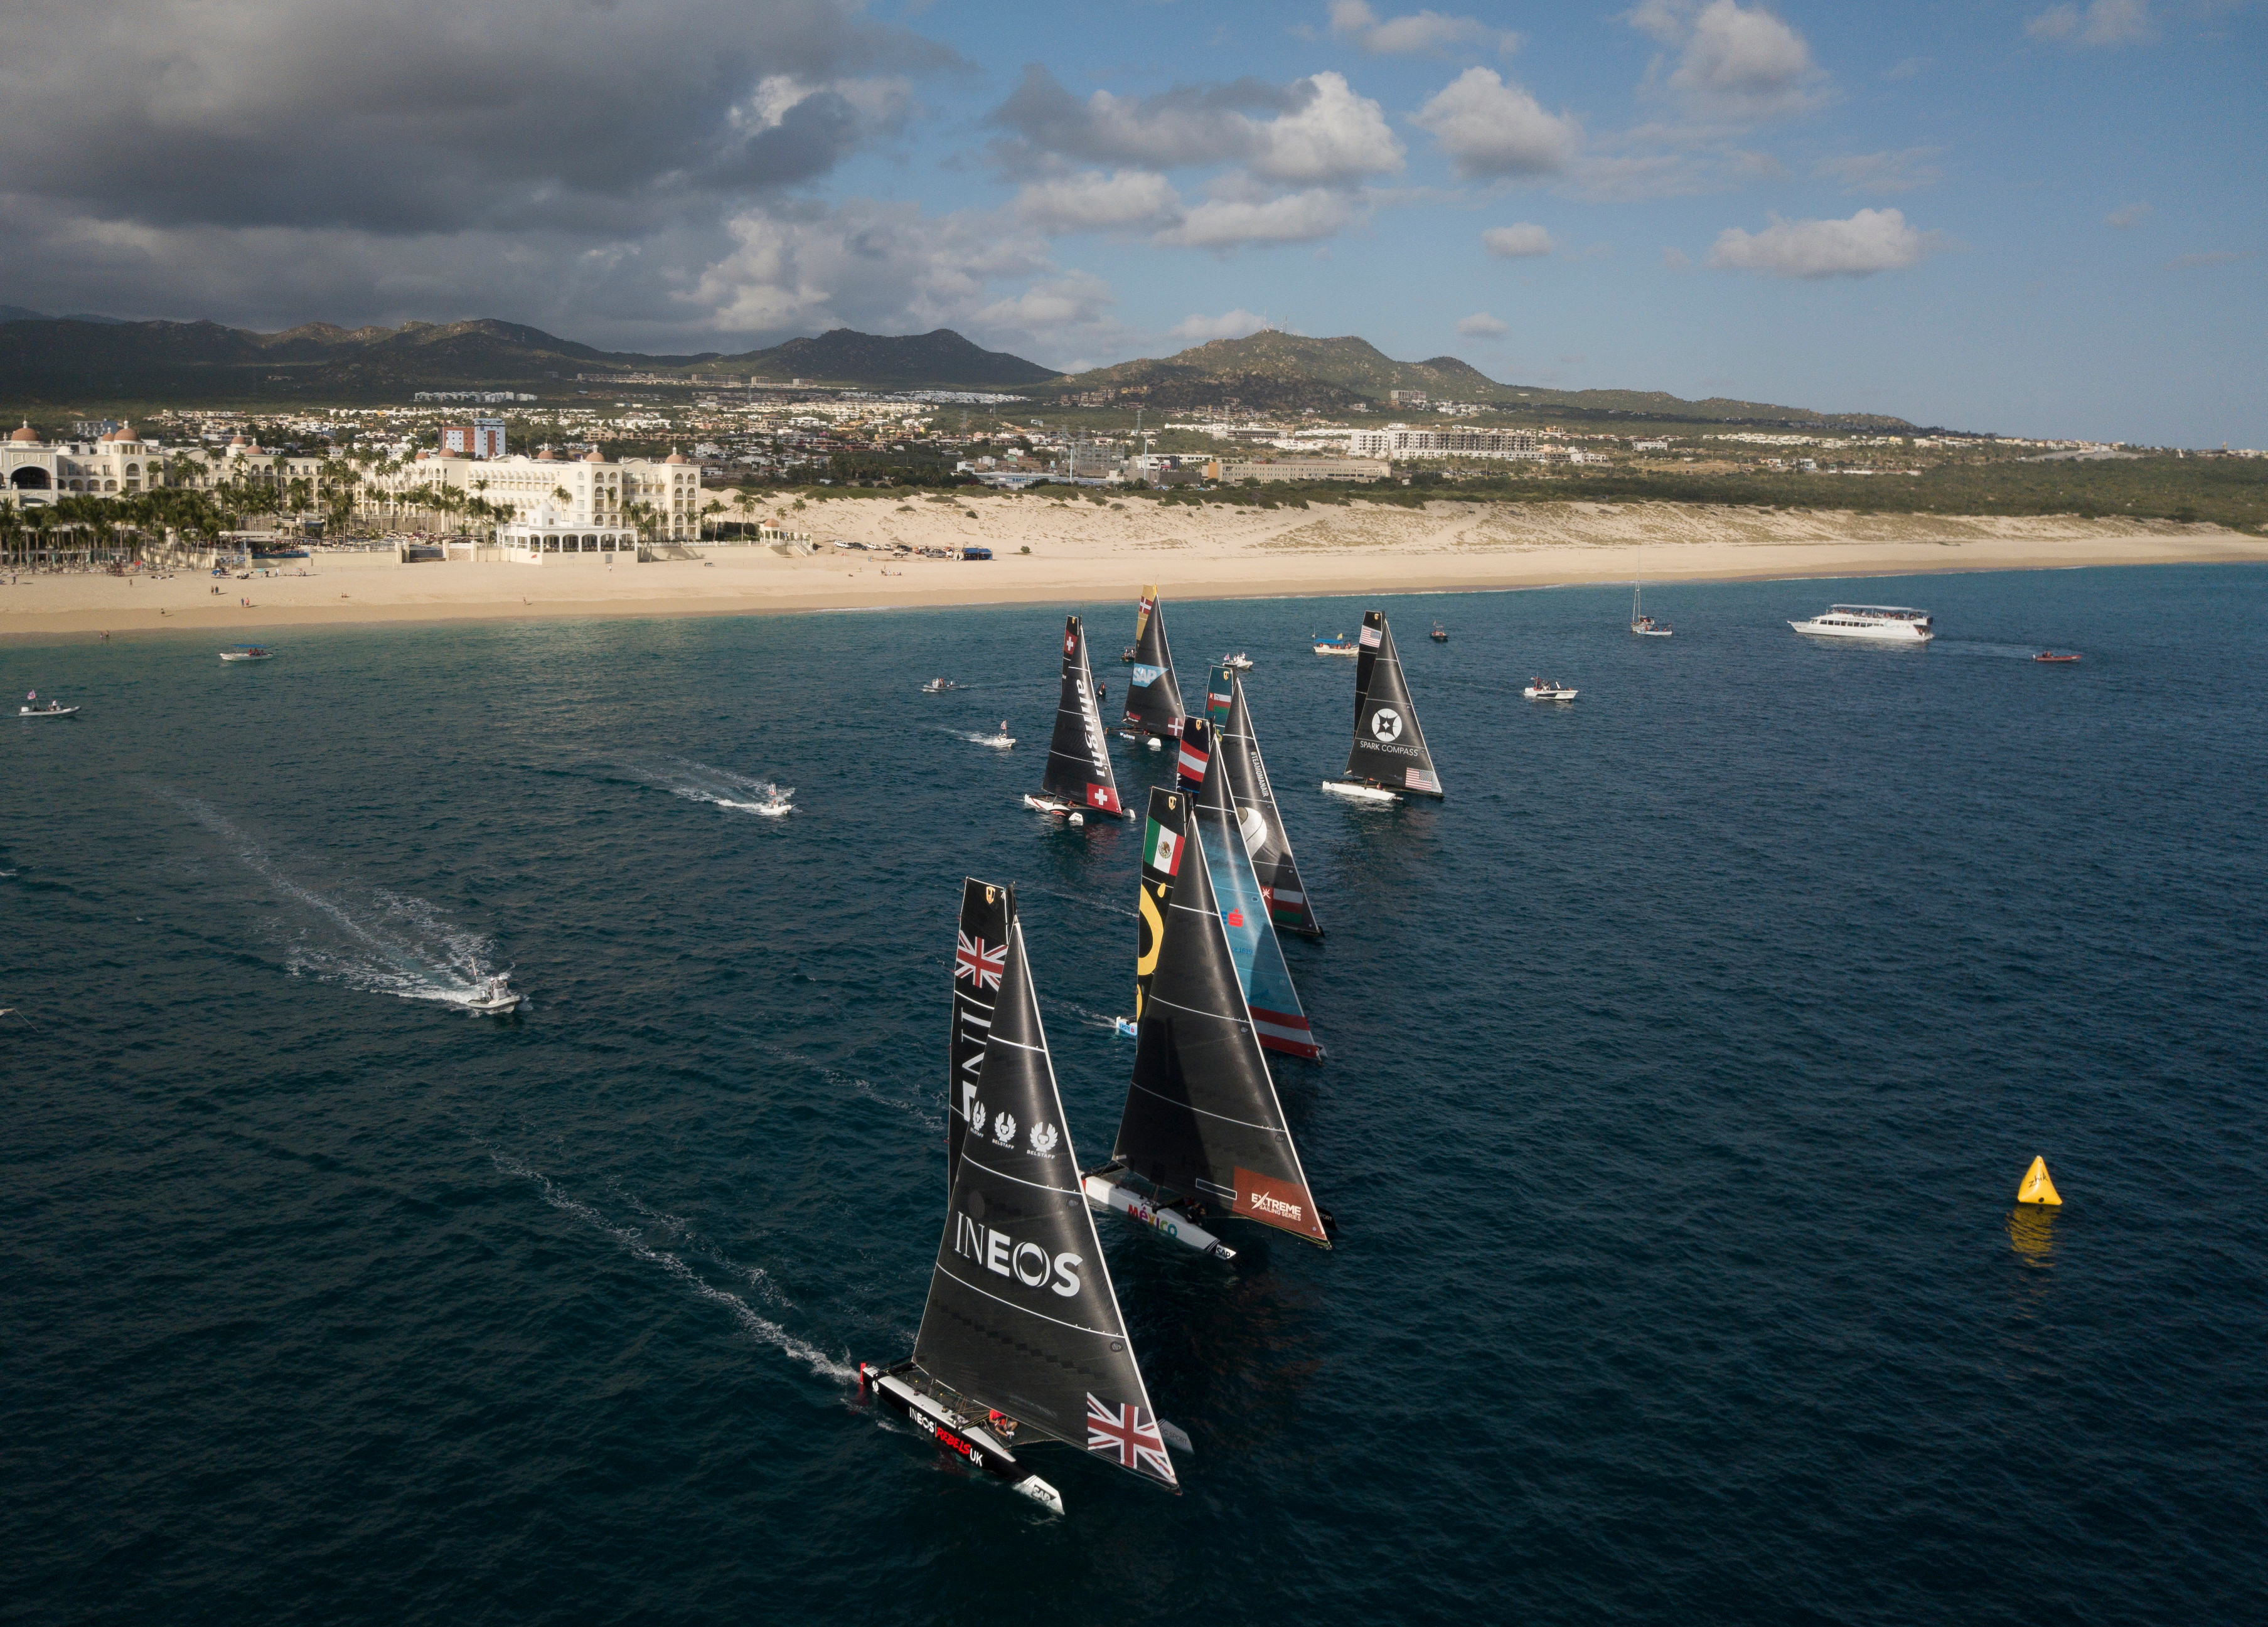 Austrian outfit impressive behind 2018 Extreme Sailing Series champions Alinghi.